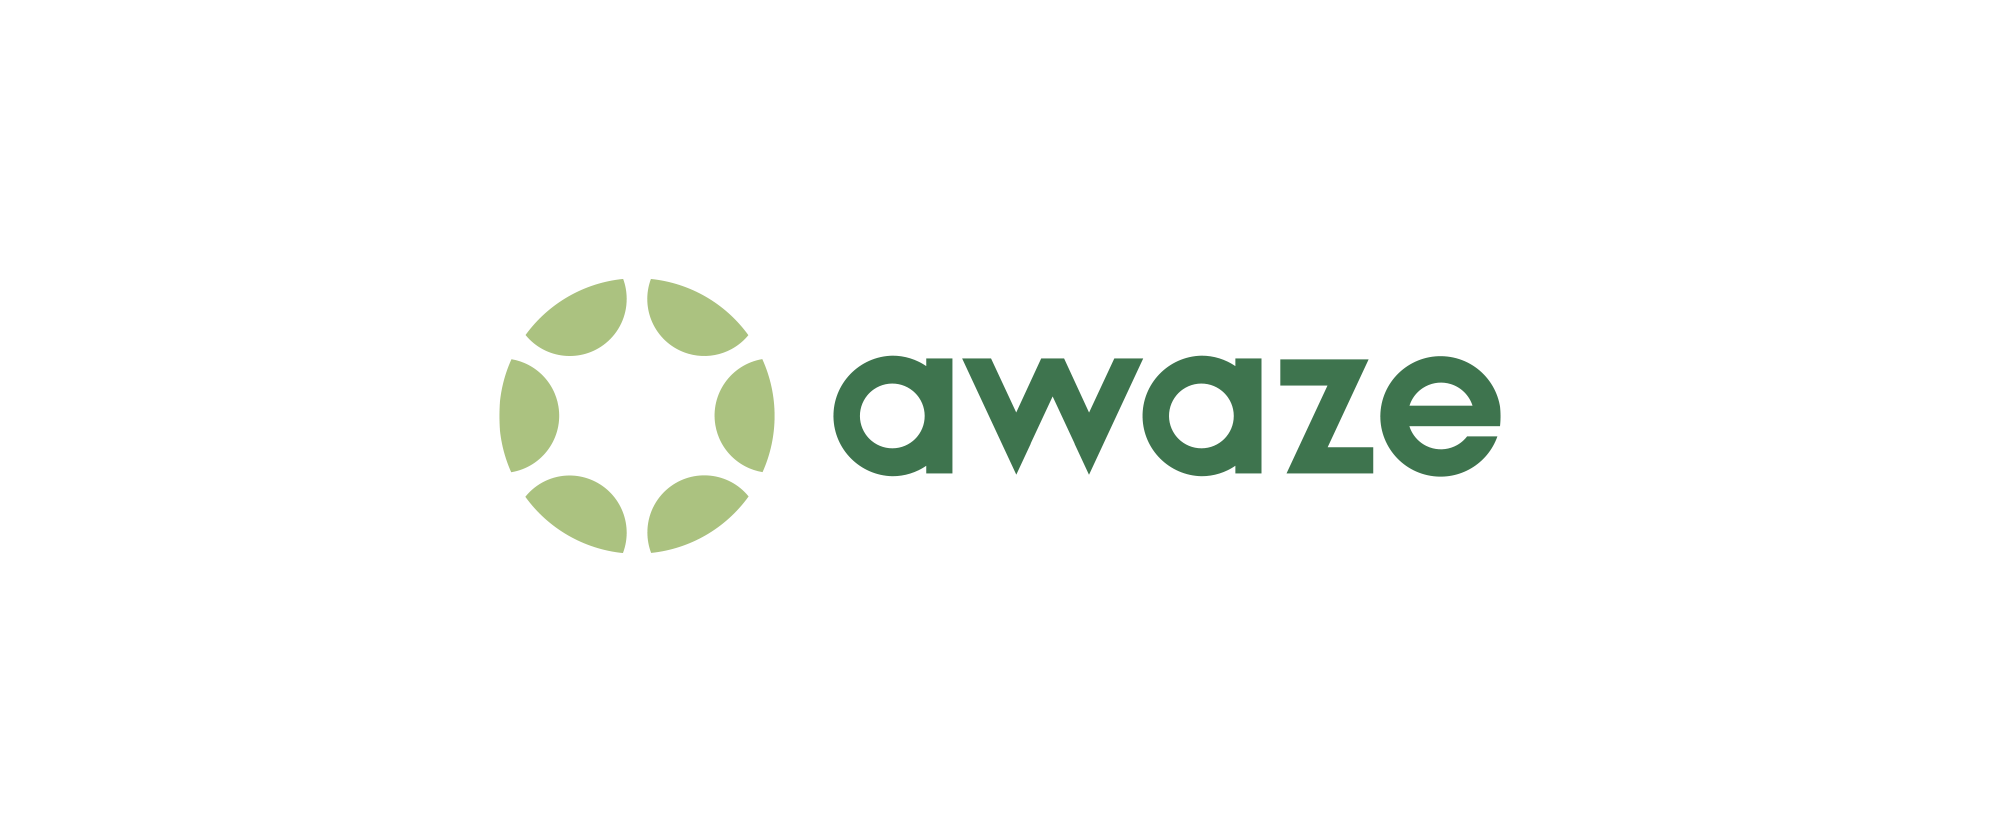 New Logo and Identity for Awaze by FOUR Agency